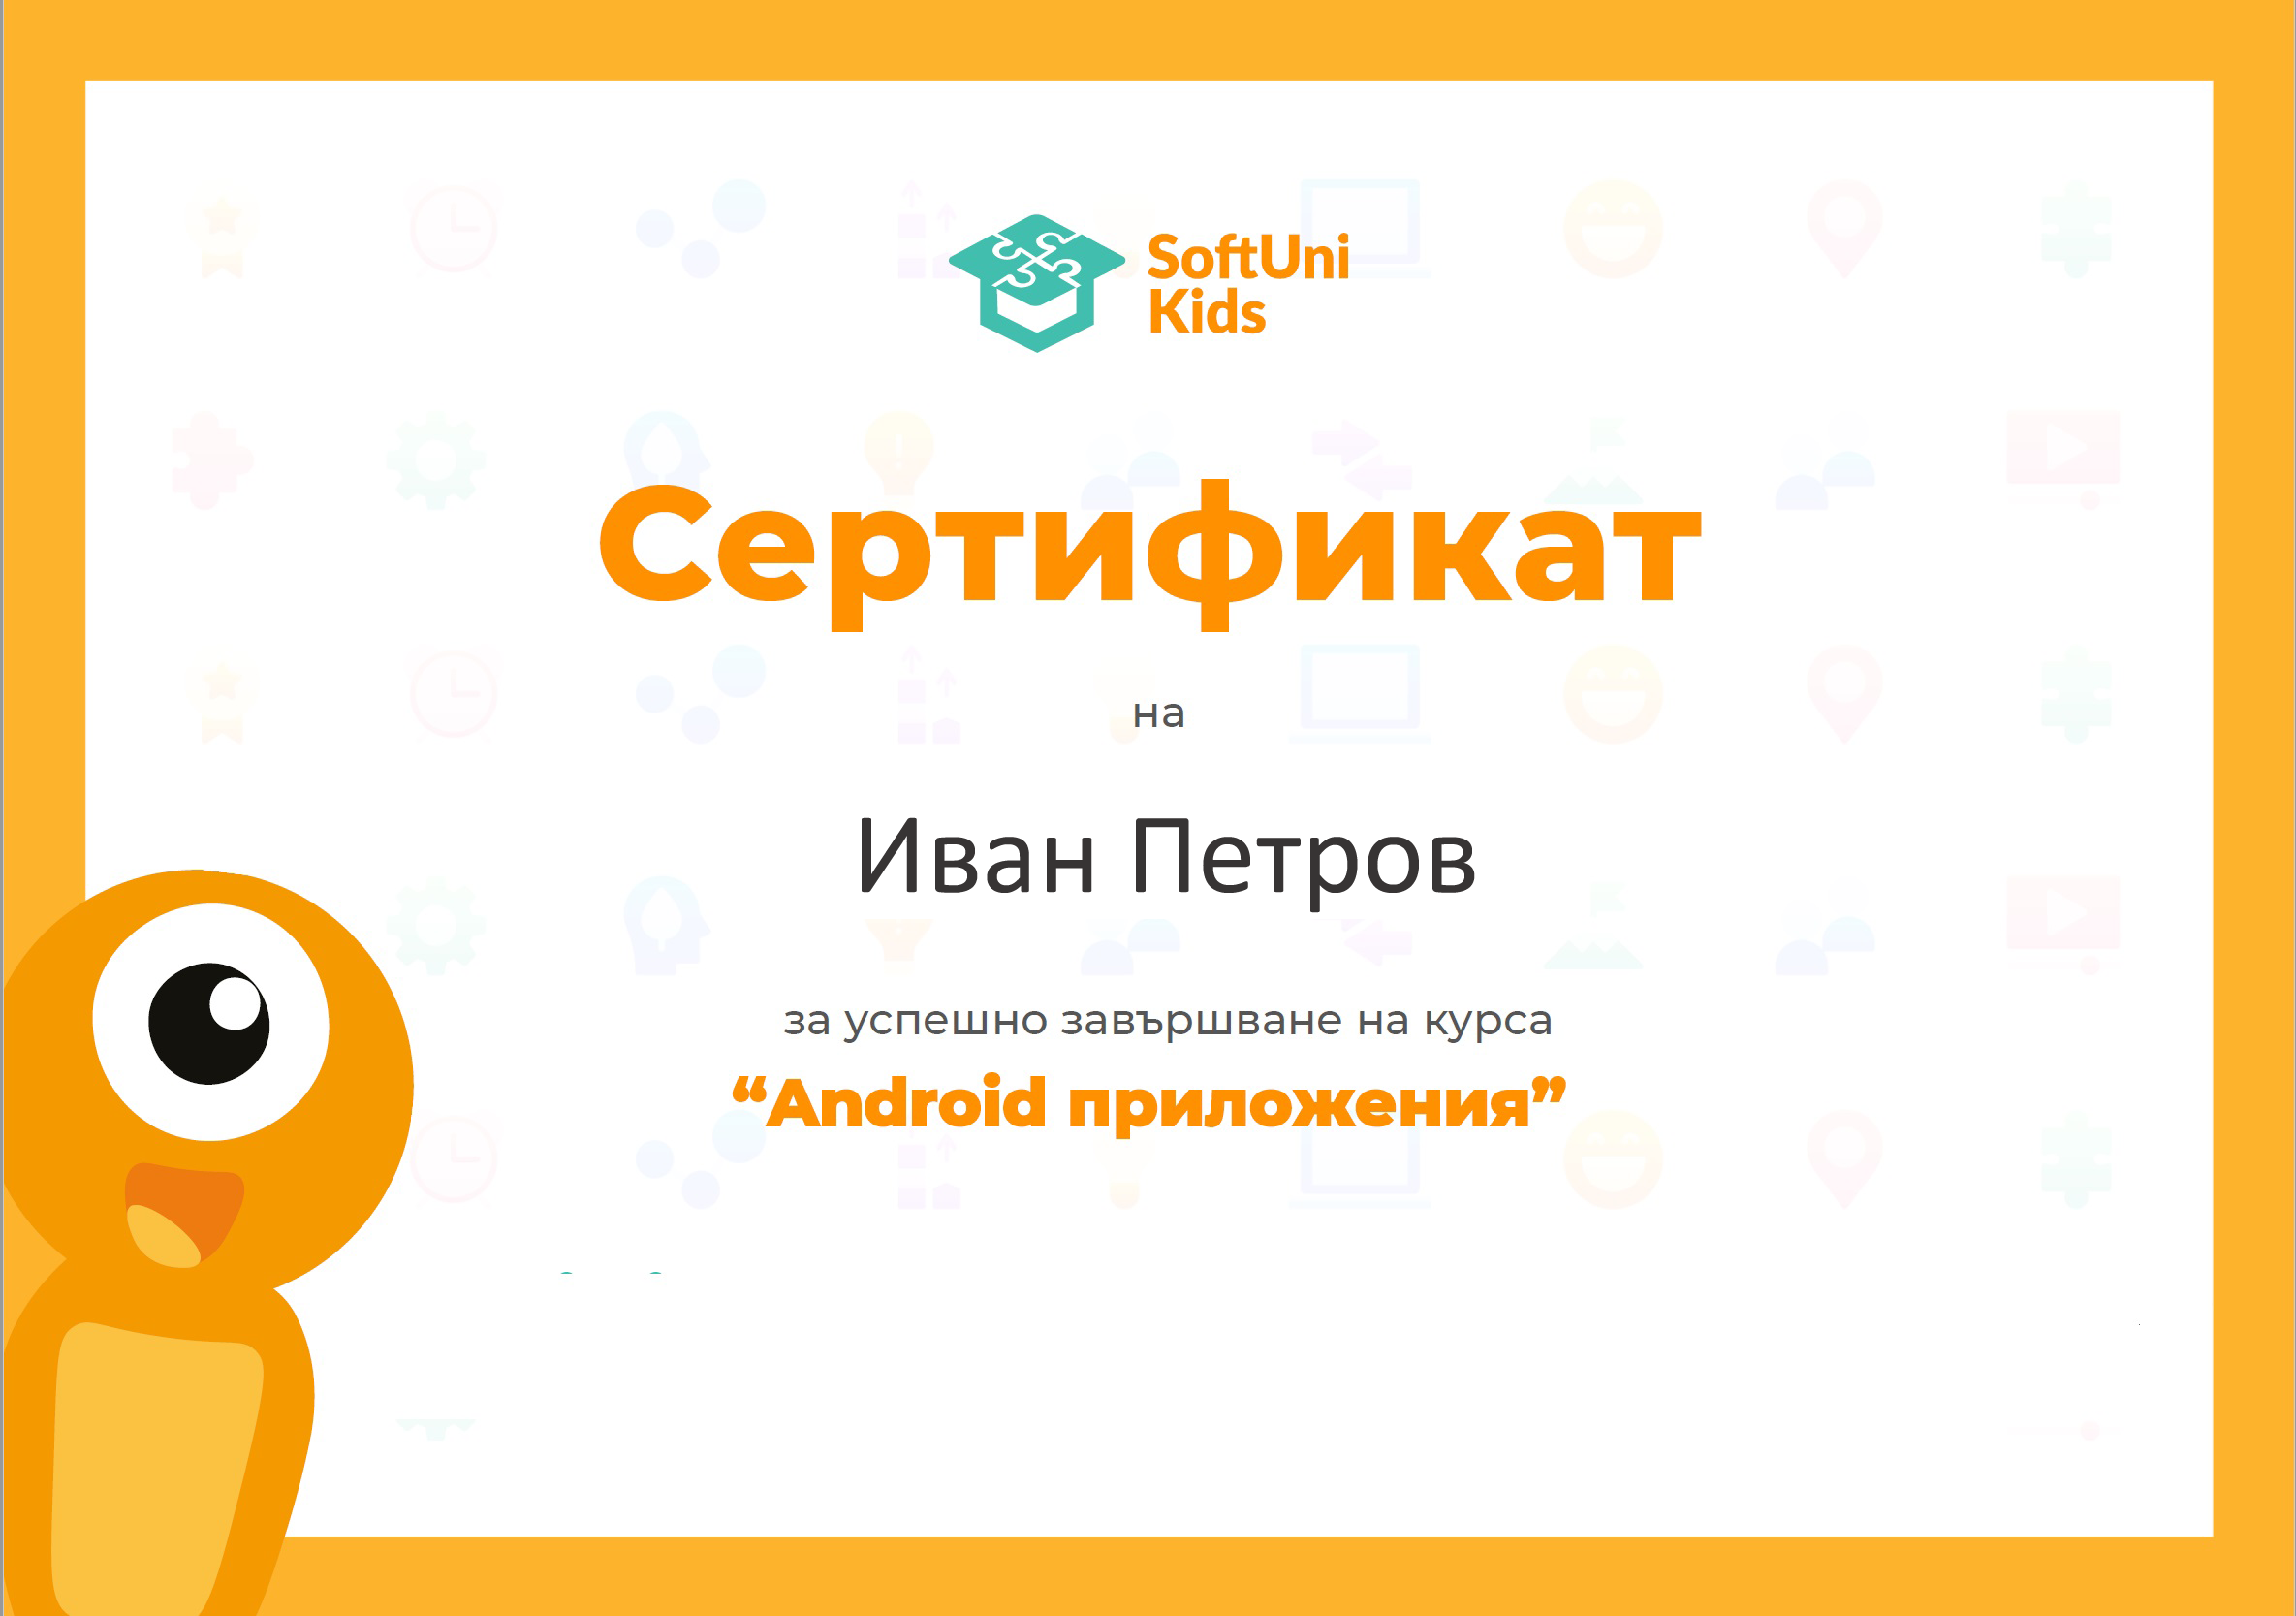 Сензори с Digital Sandbox